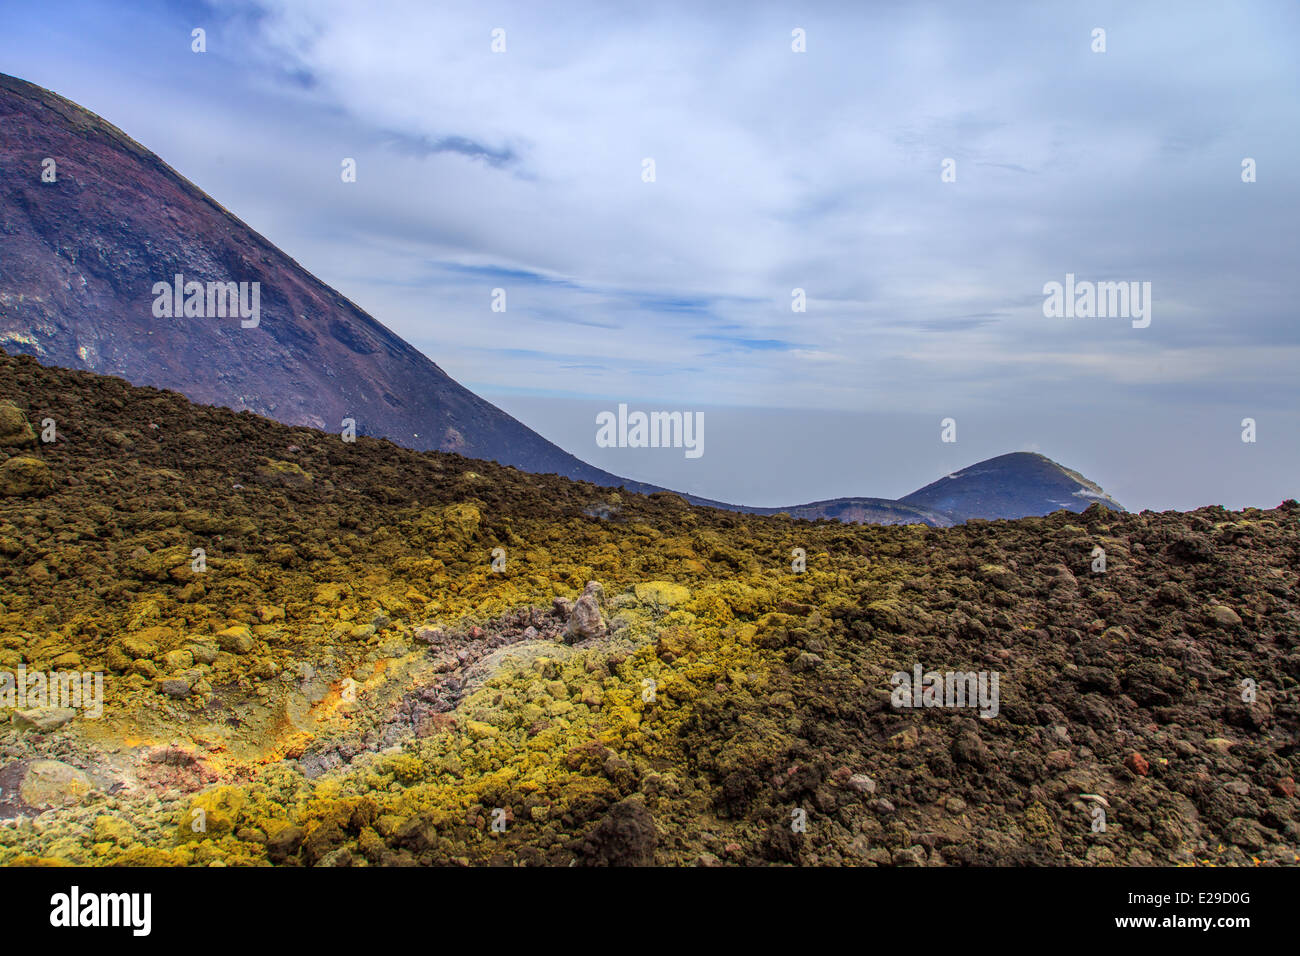 Sulfur formation ever the summit mouth of Mount Etna - Stock Image